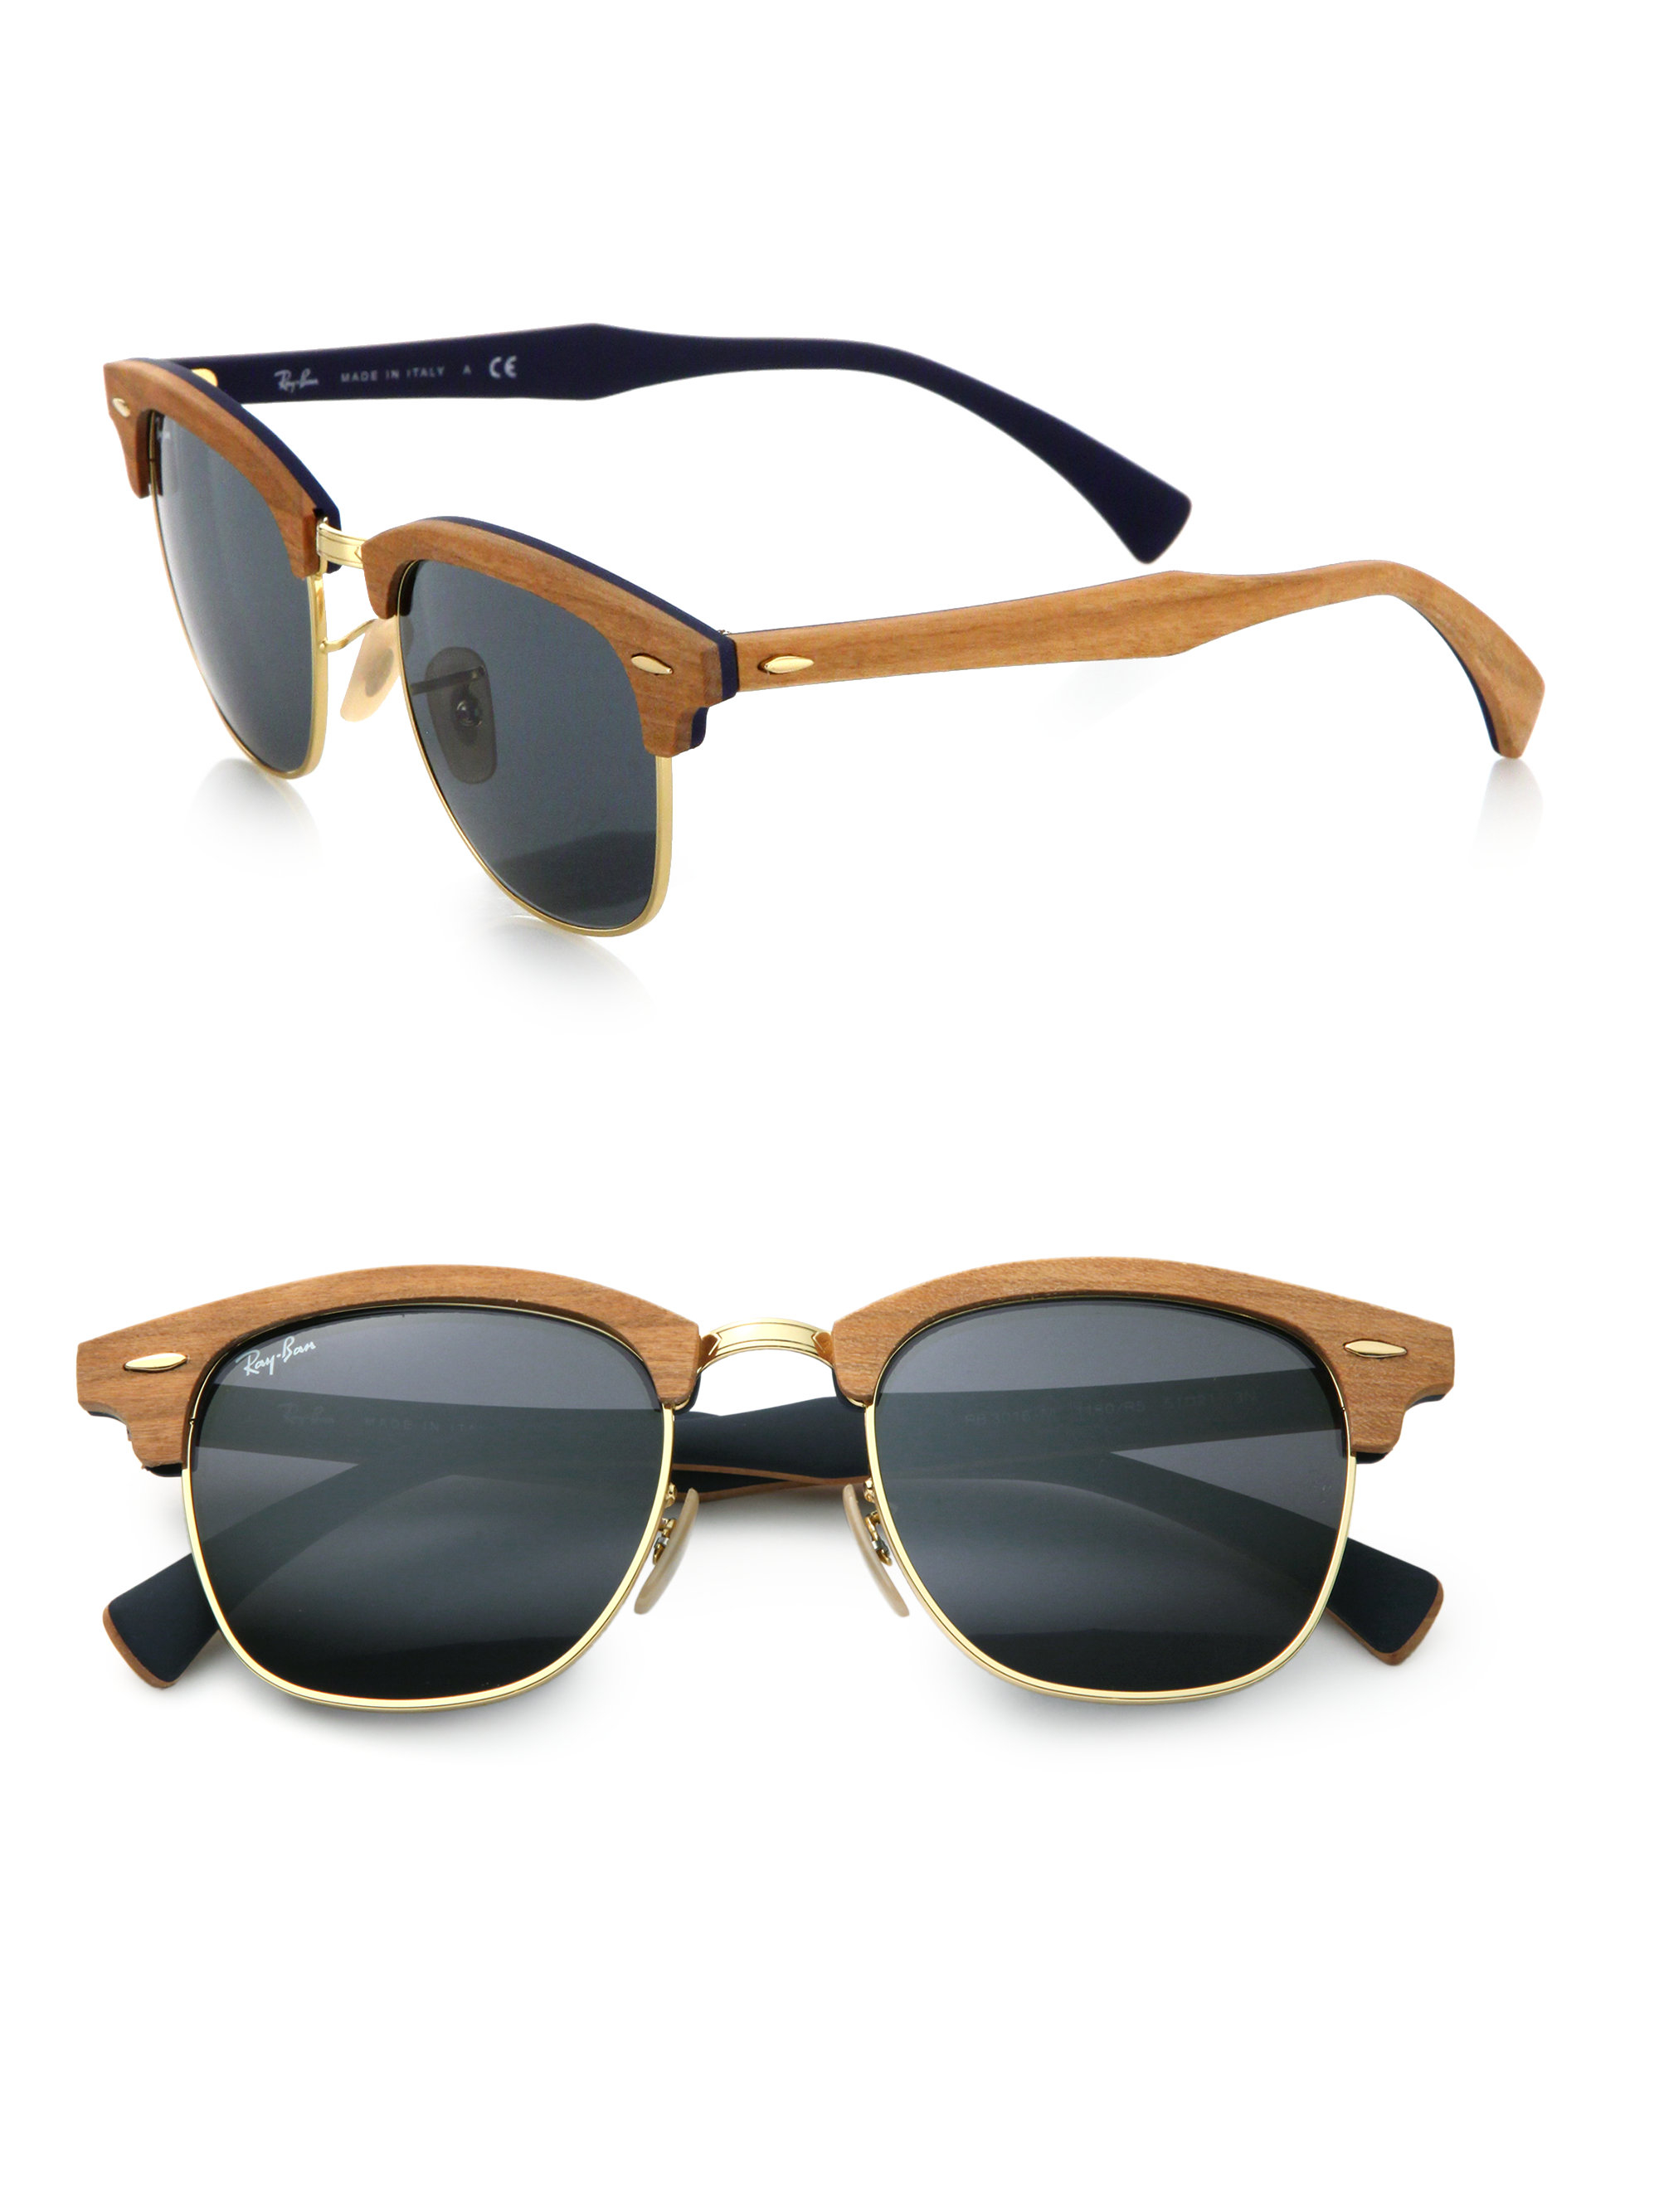 9f879b44c8 ... low cost gallery. previously sold at saks fifth avenue mens ray ban  clubmaster ad086 6d514